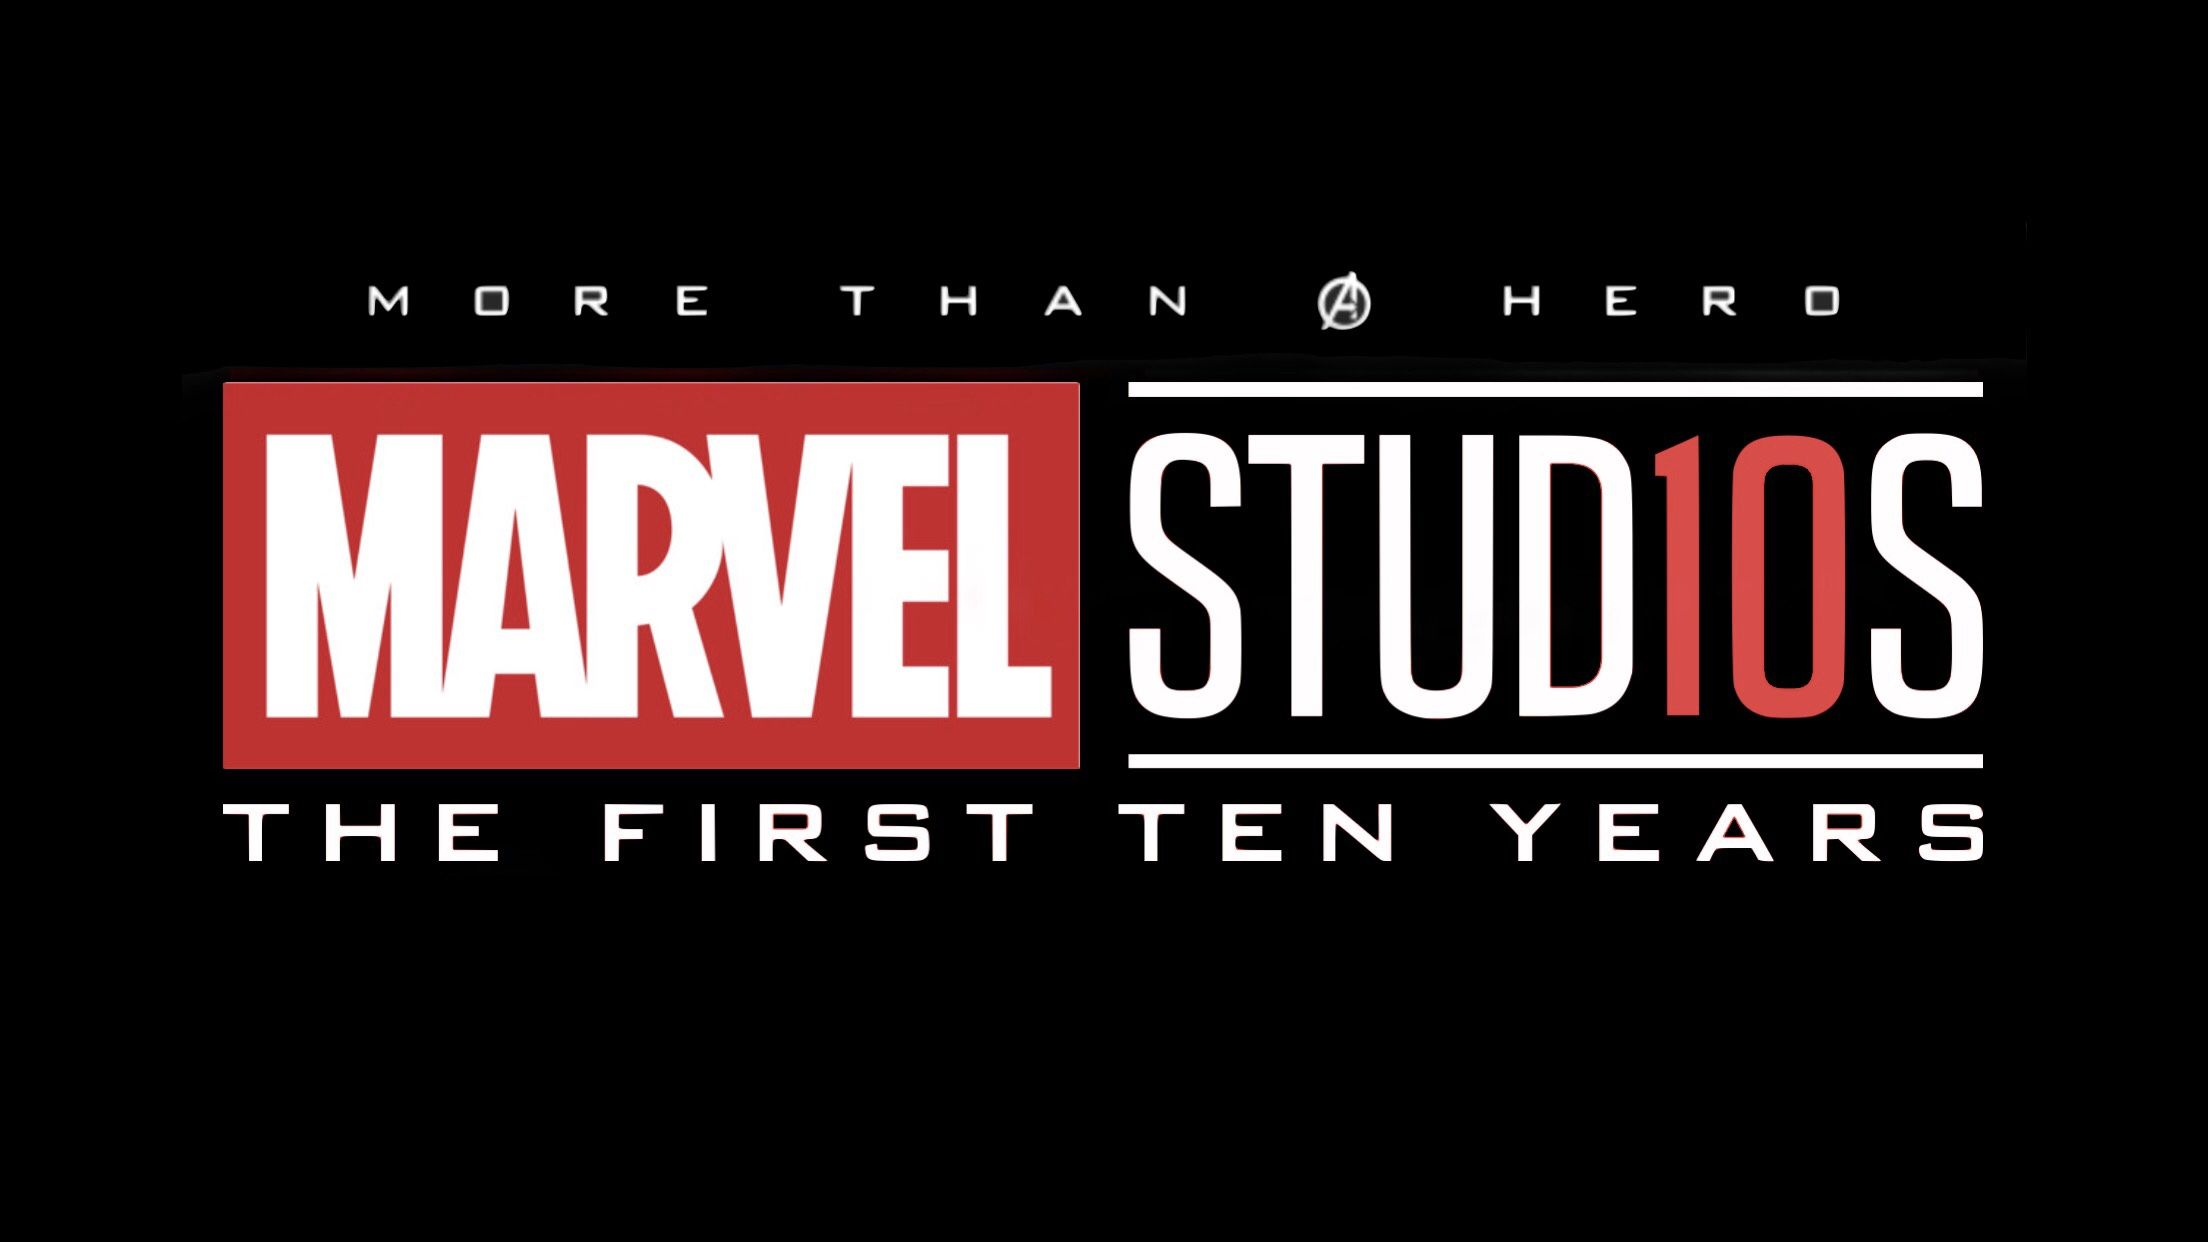 Marvel Studios: the First Ten Years Logo | Marvel studios logo, Marvel superhero posters, Marvel studios